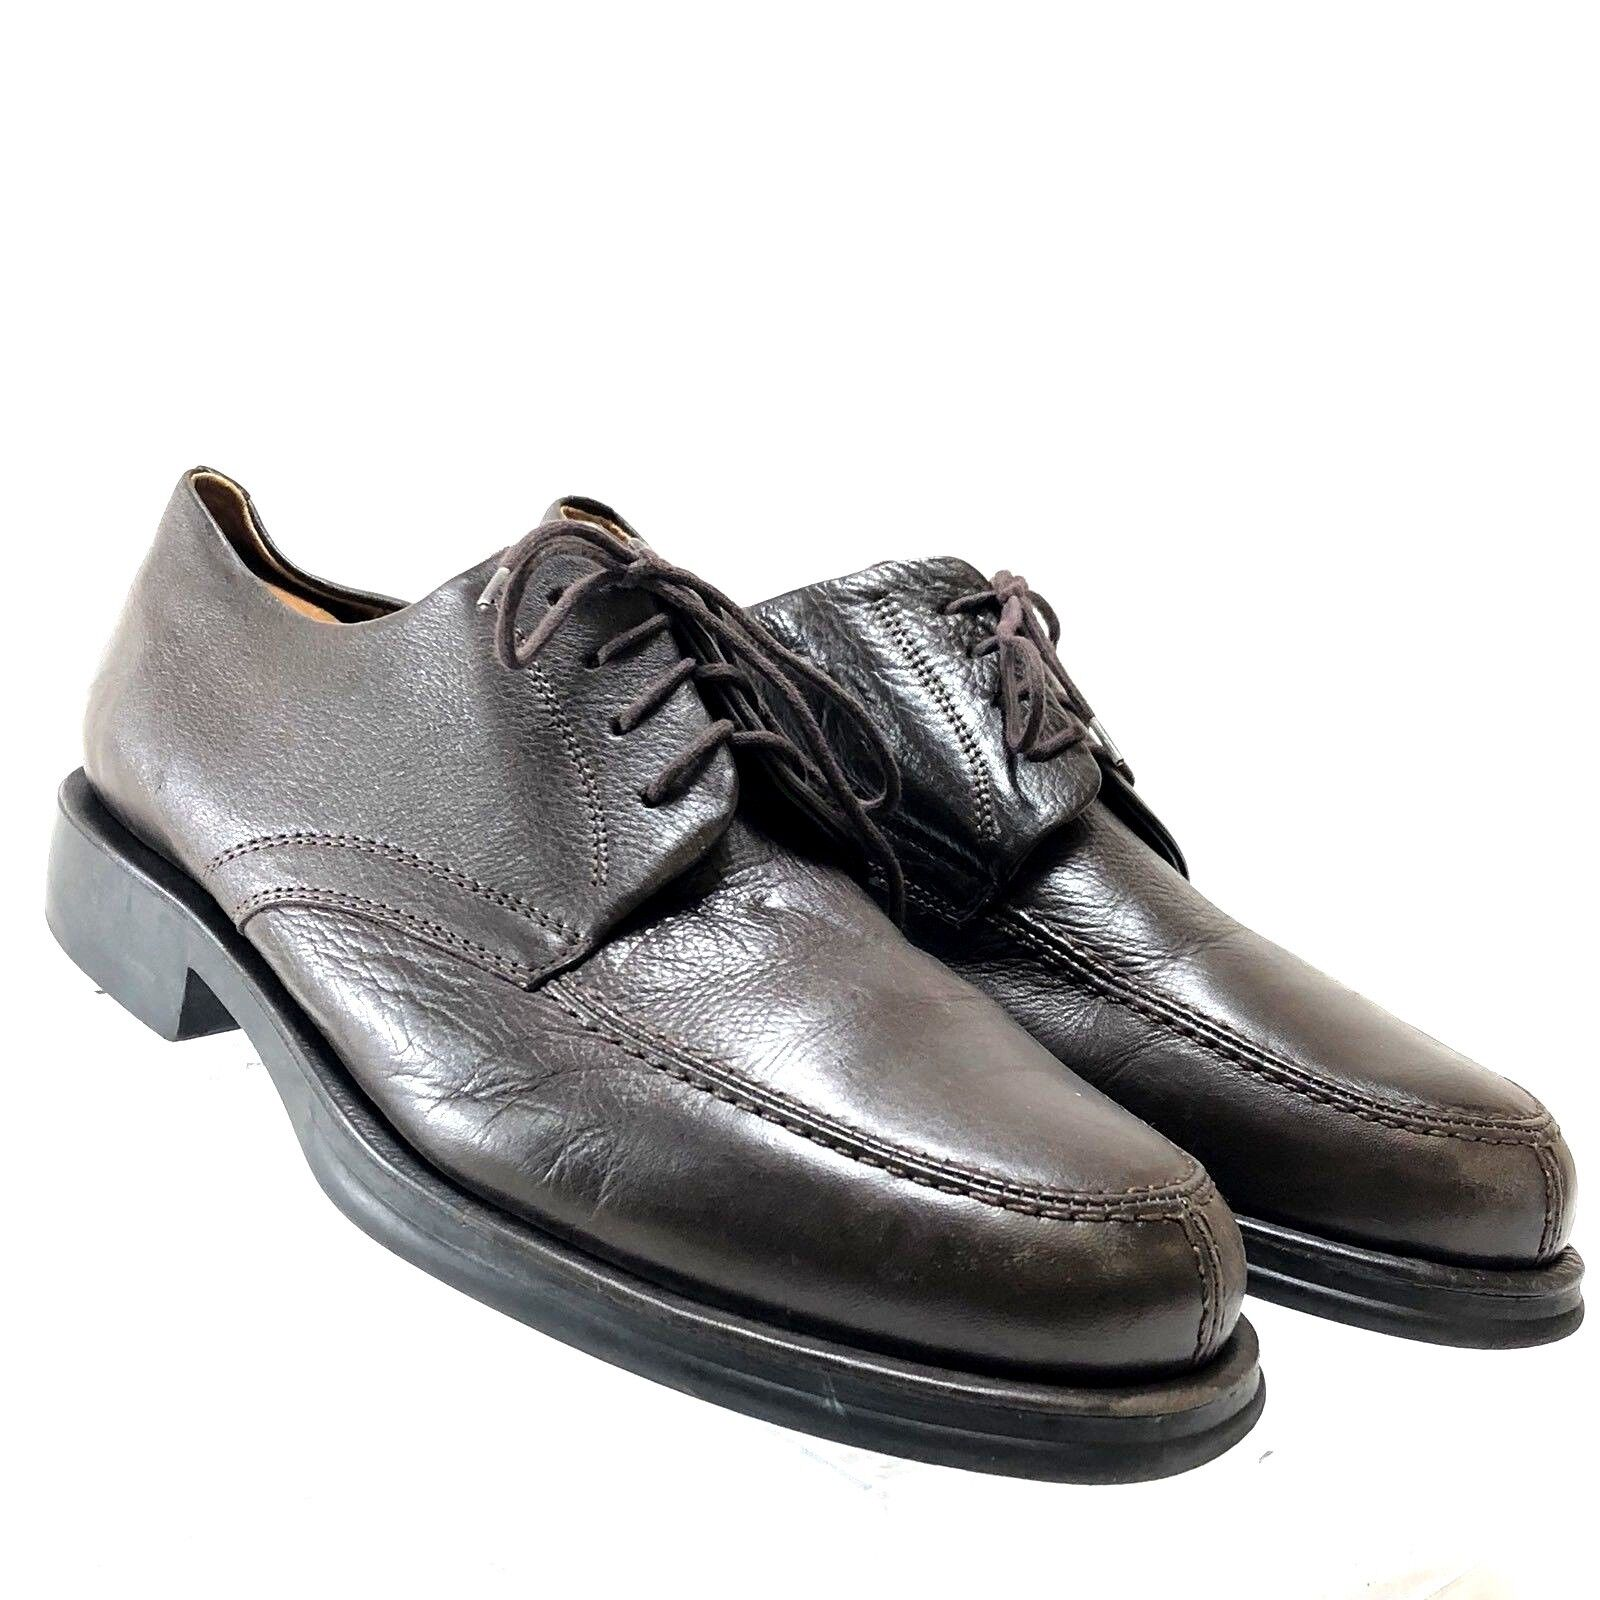 Sandro Moscoloni Mens shoes Dress Oxfords Business Casual Brown Leather 10D